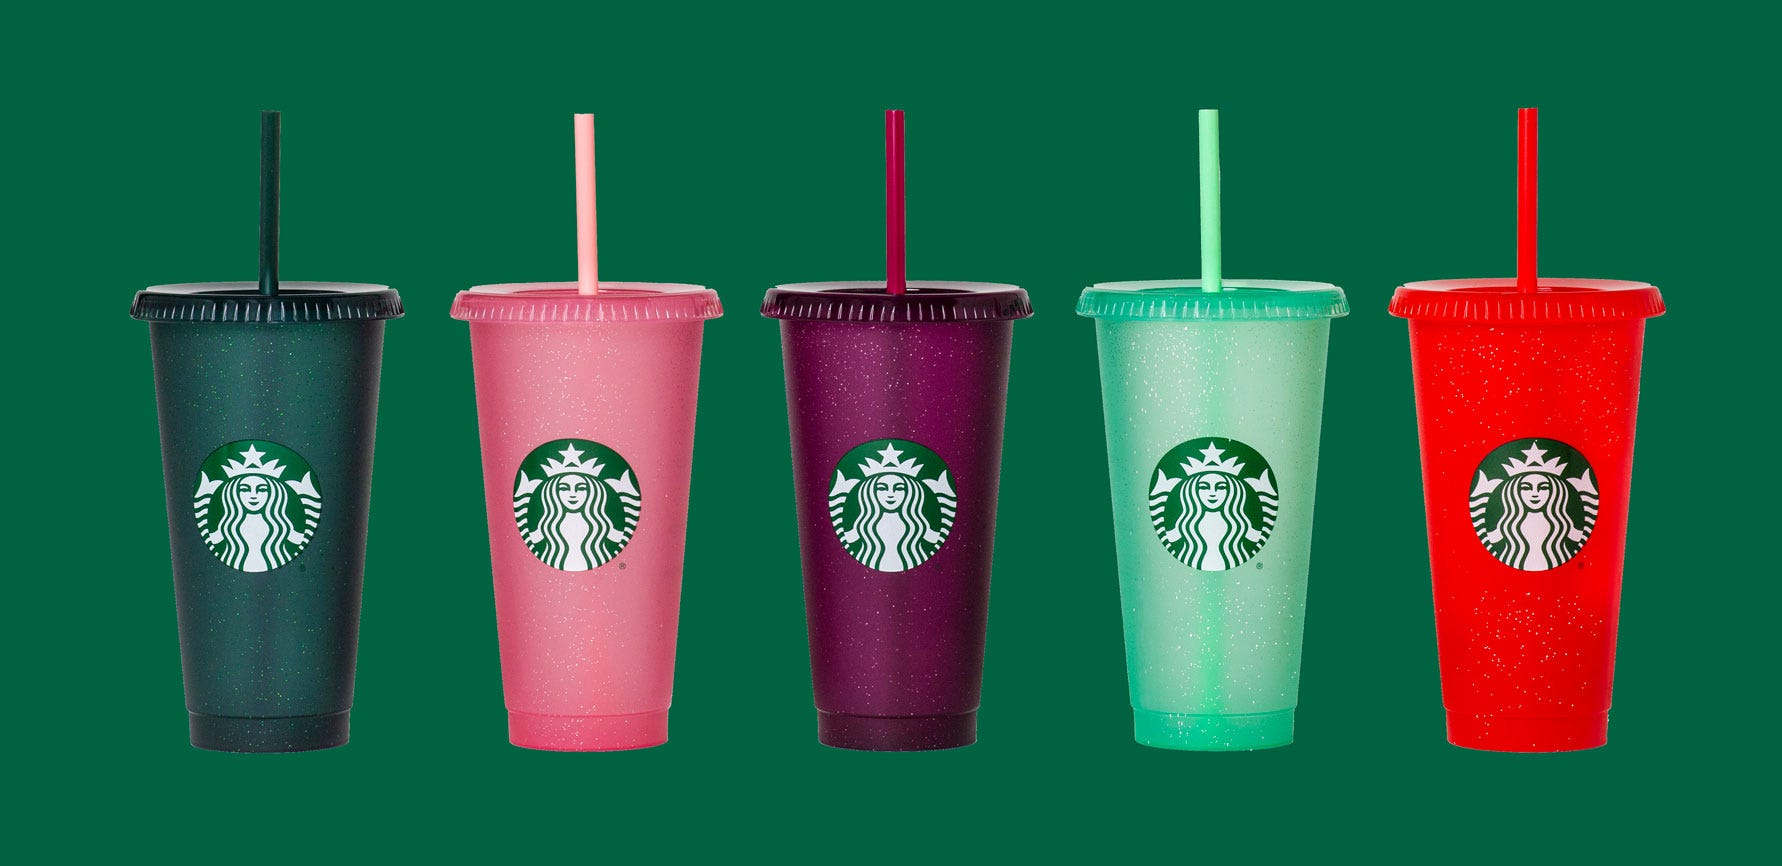 Five of Starbucks' holiday cold cups.